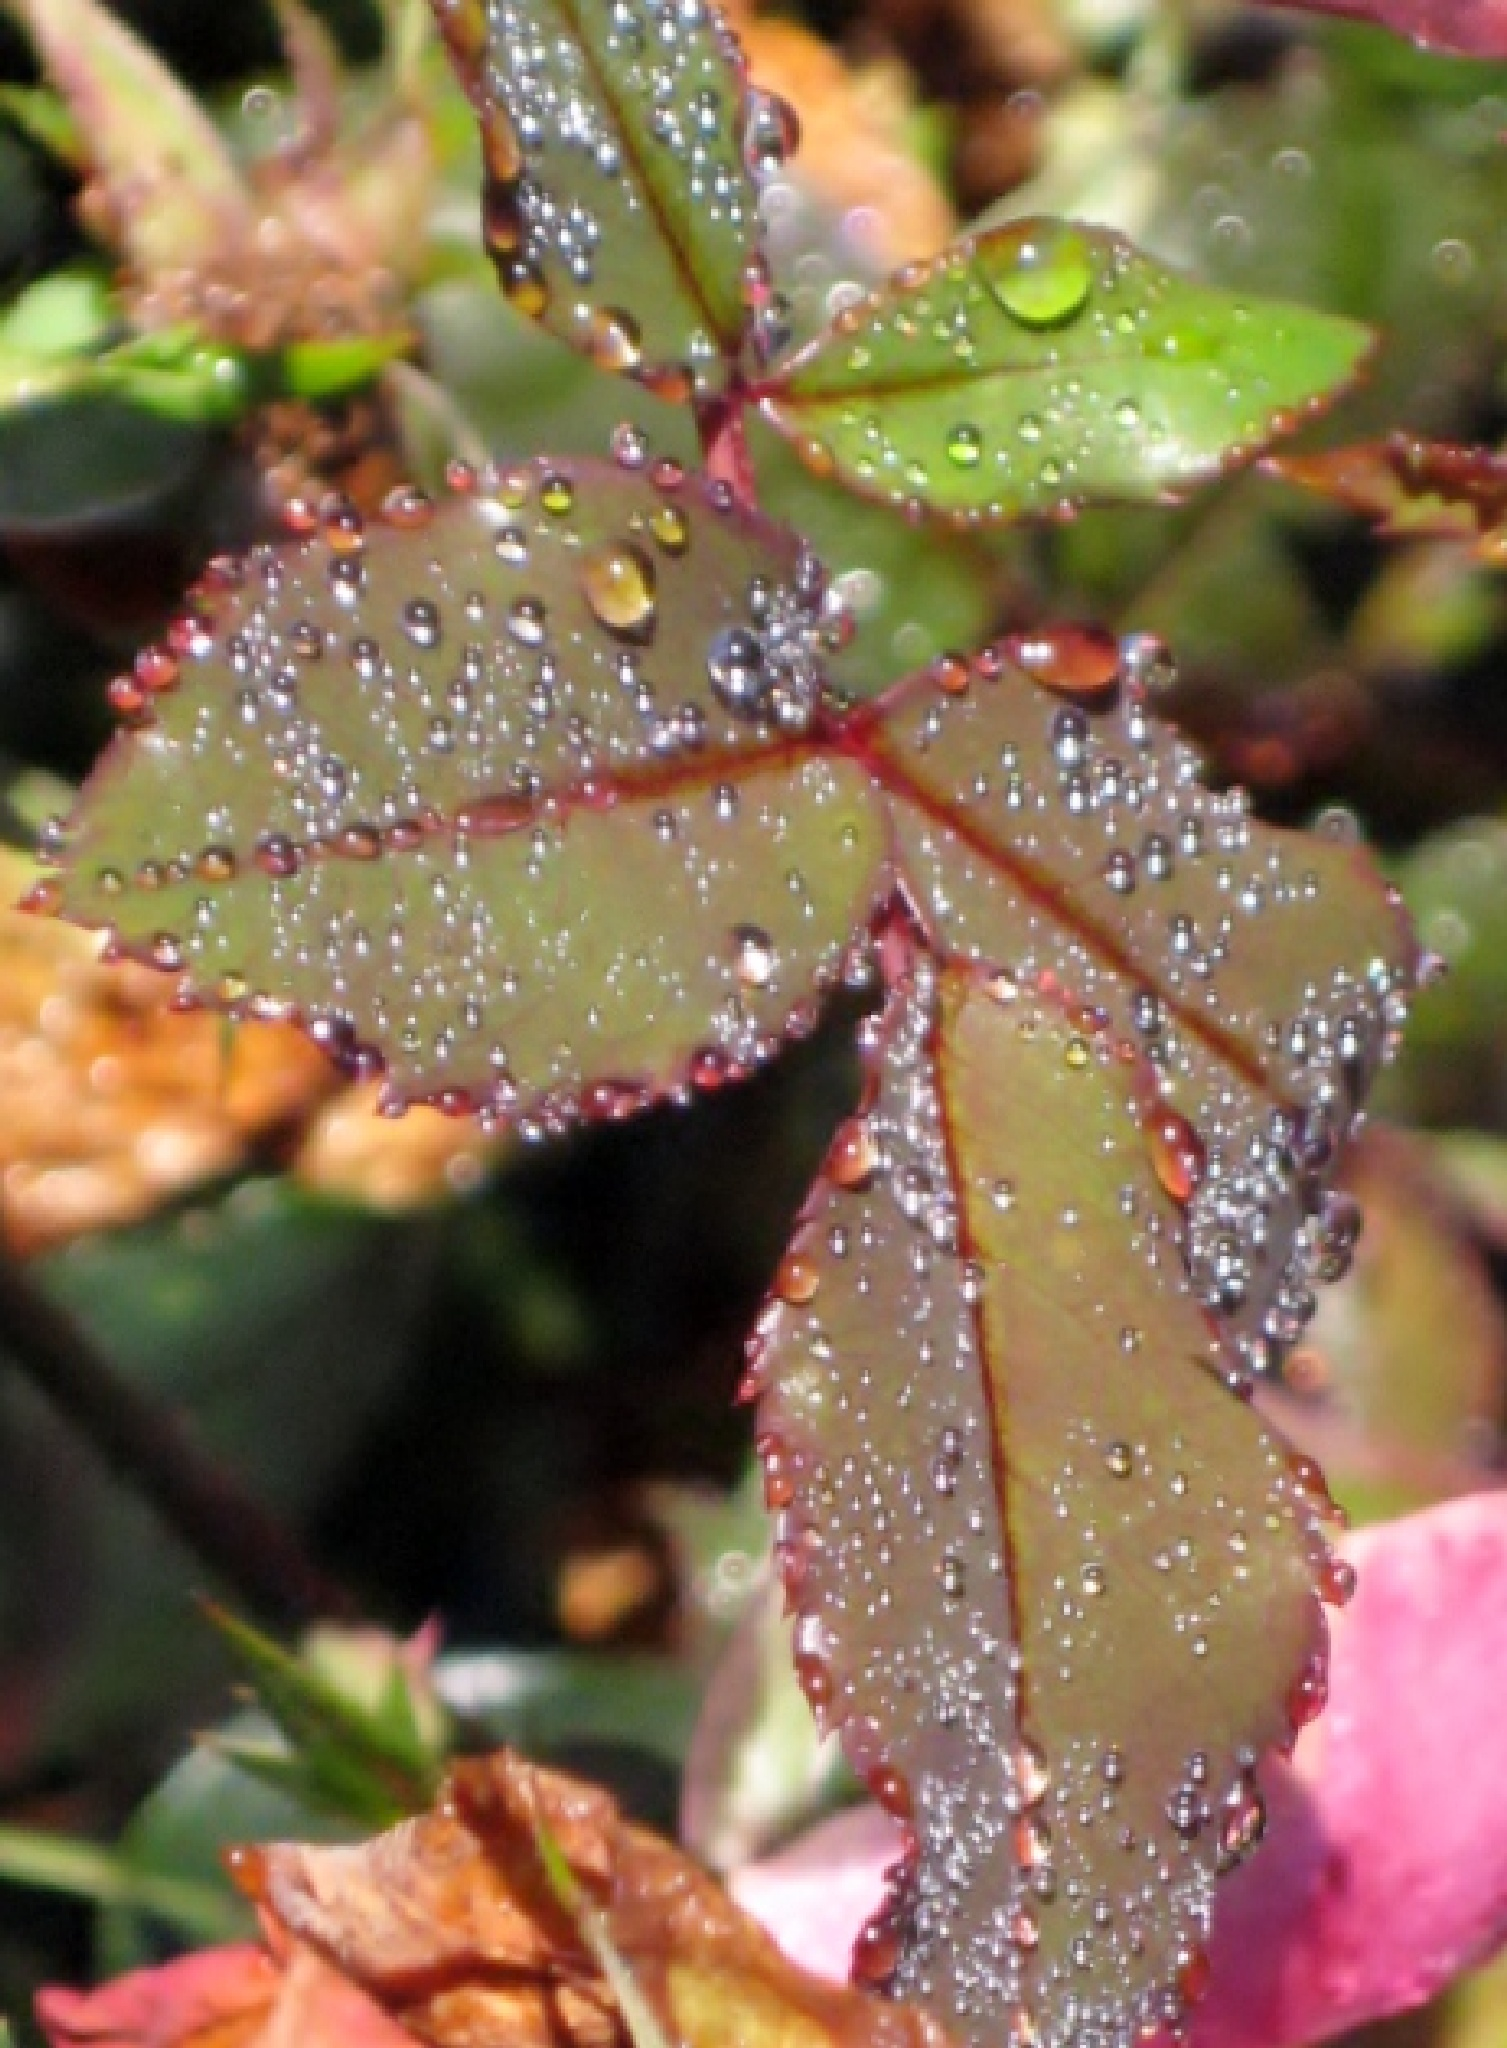 Rose leaves after a rain by Marcy Cox